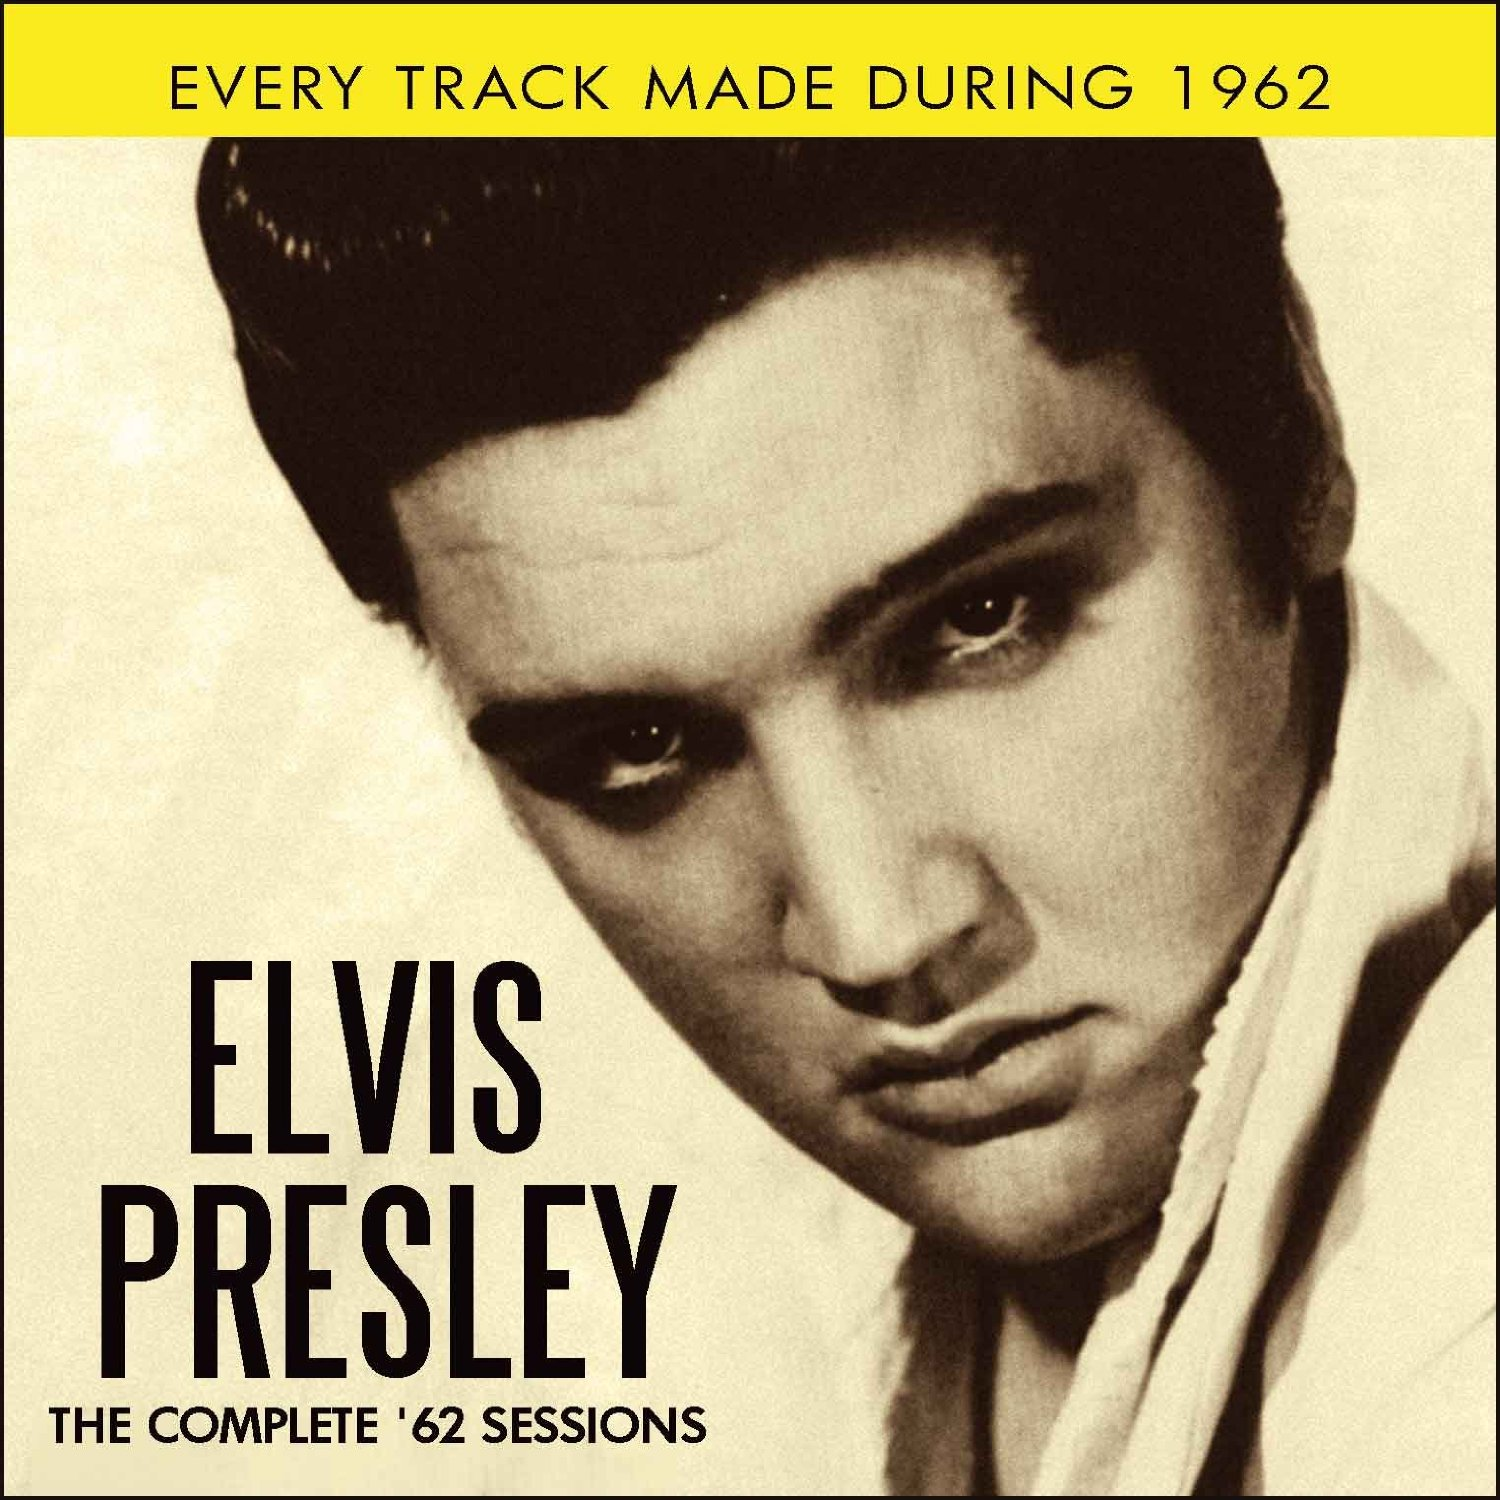 Elvis Presley - The Complete ´62 Sessions